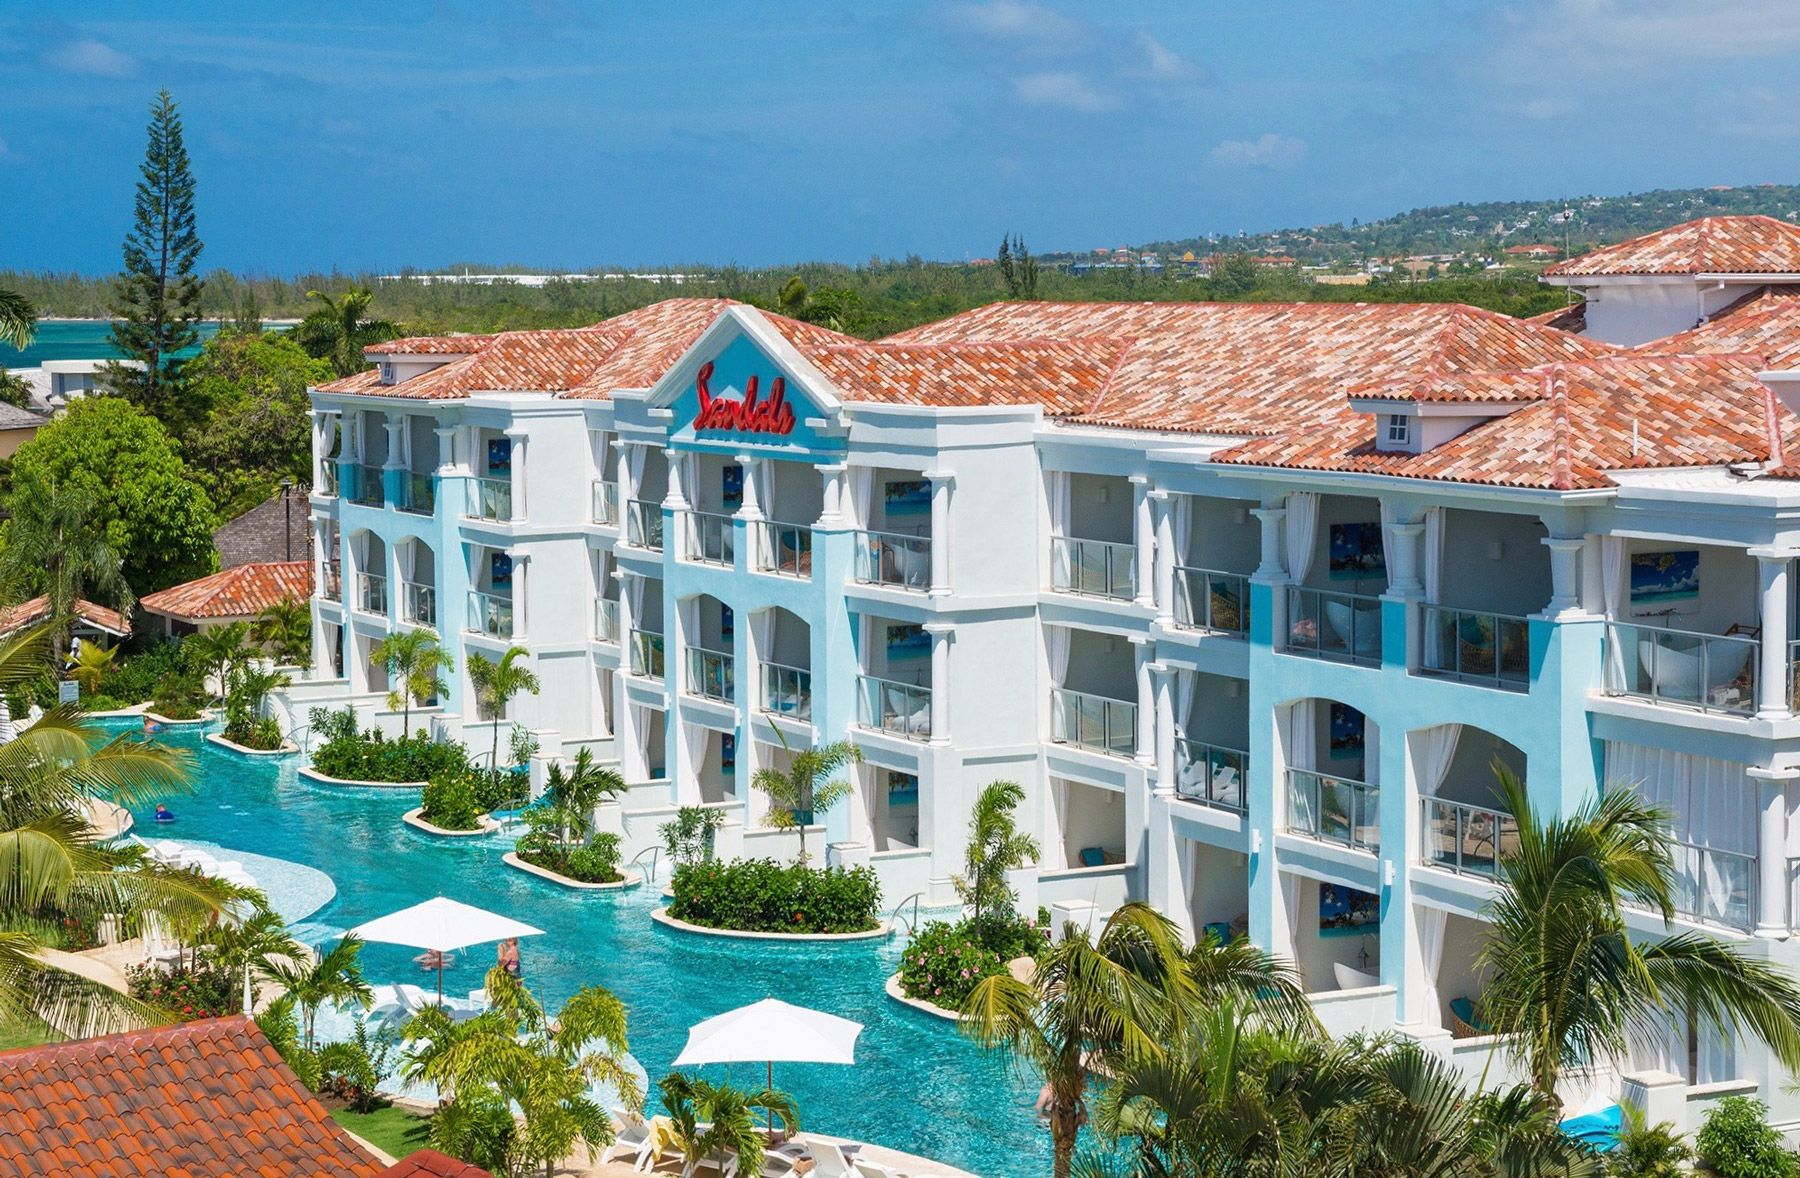 sandals montego bay resort front view